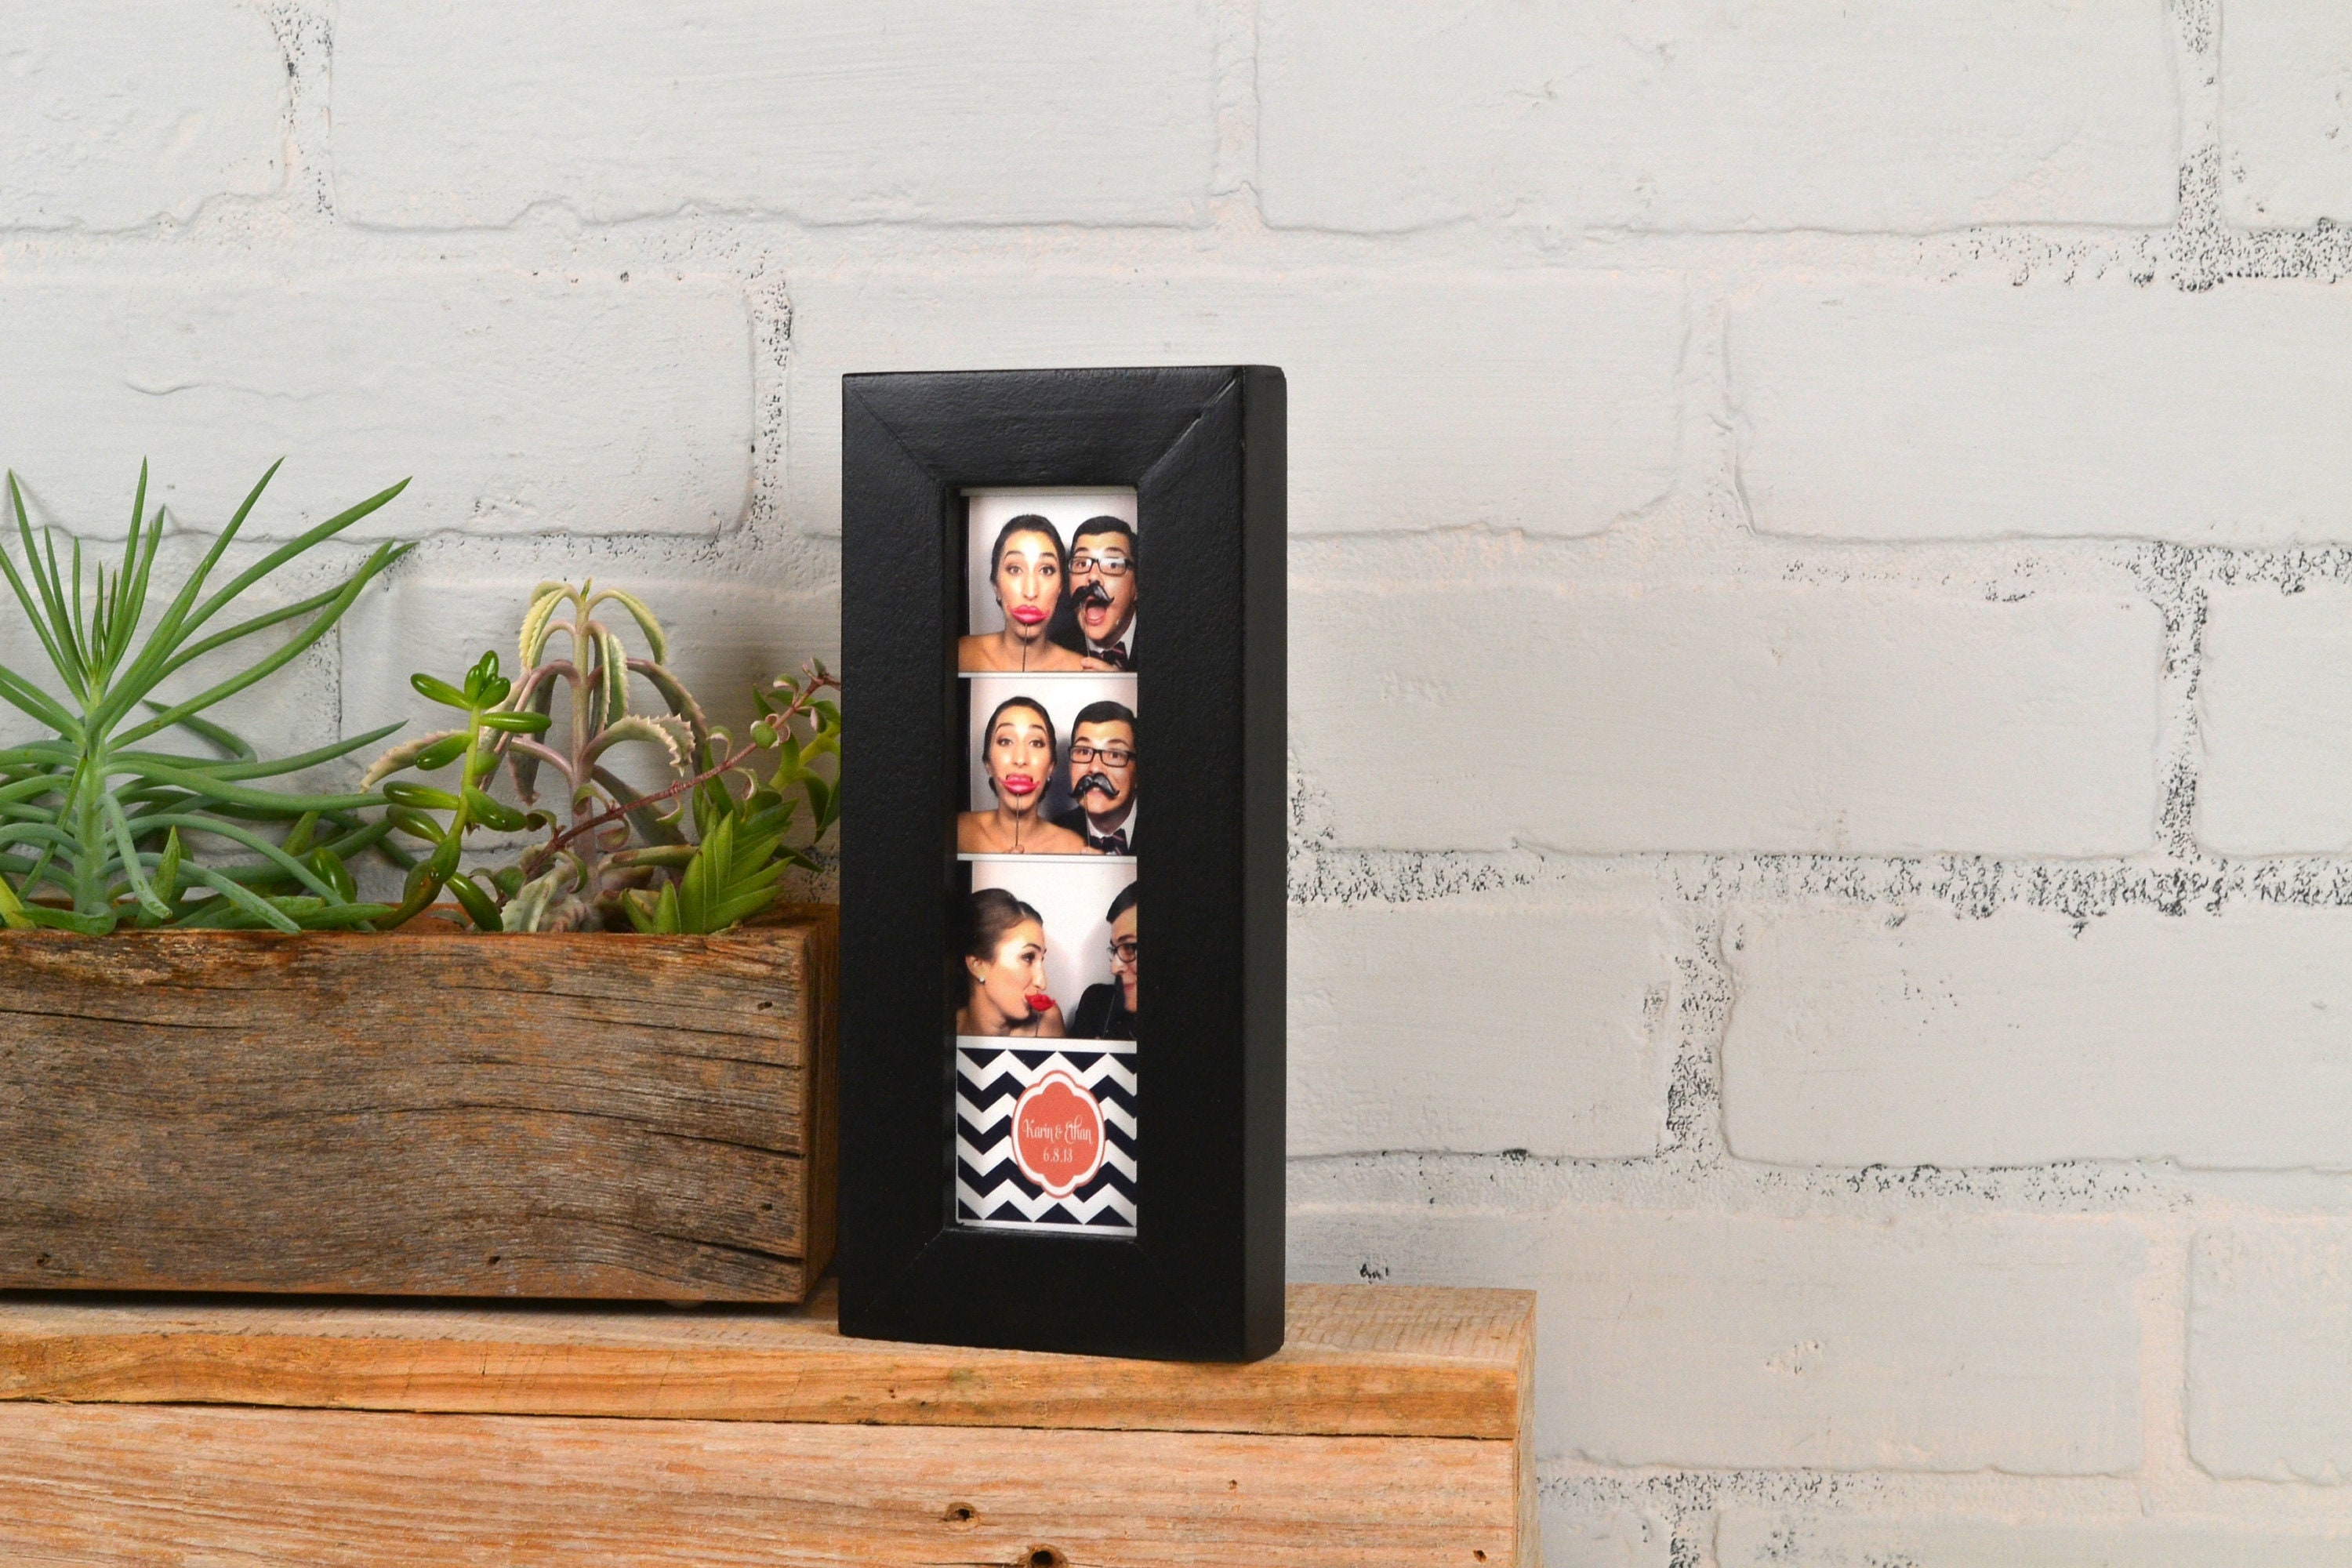 Photo Booth Frame 2 X 6 For Picture Strip In 1x1 Flat Style And In